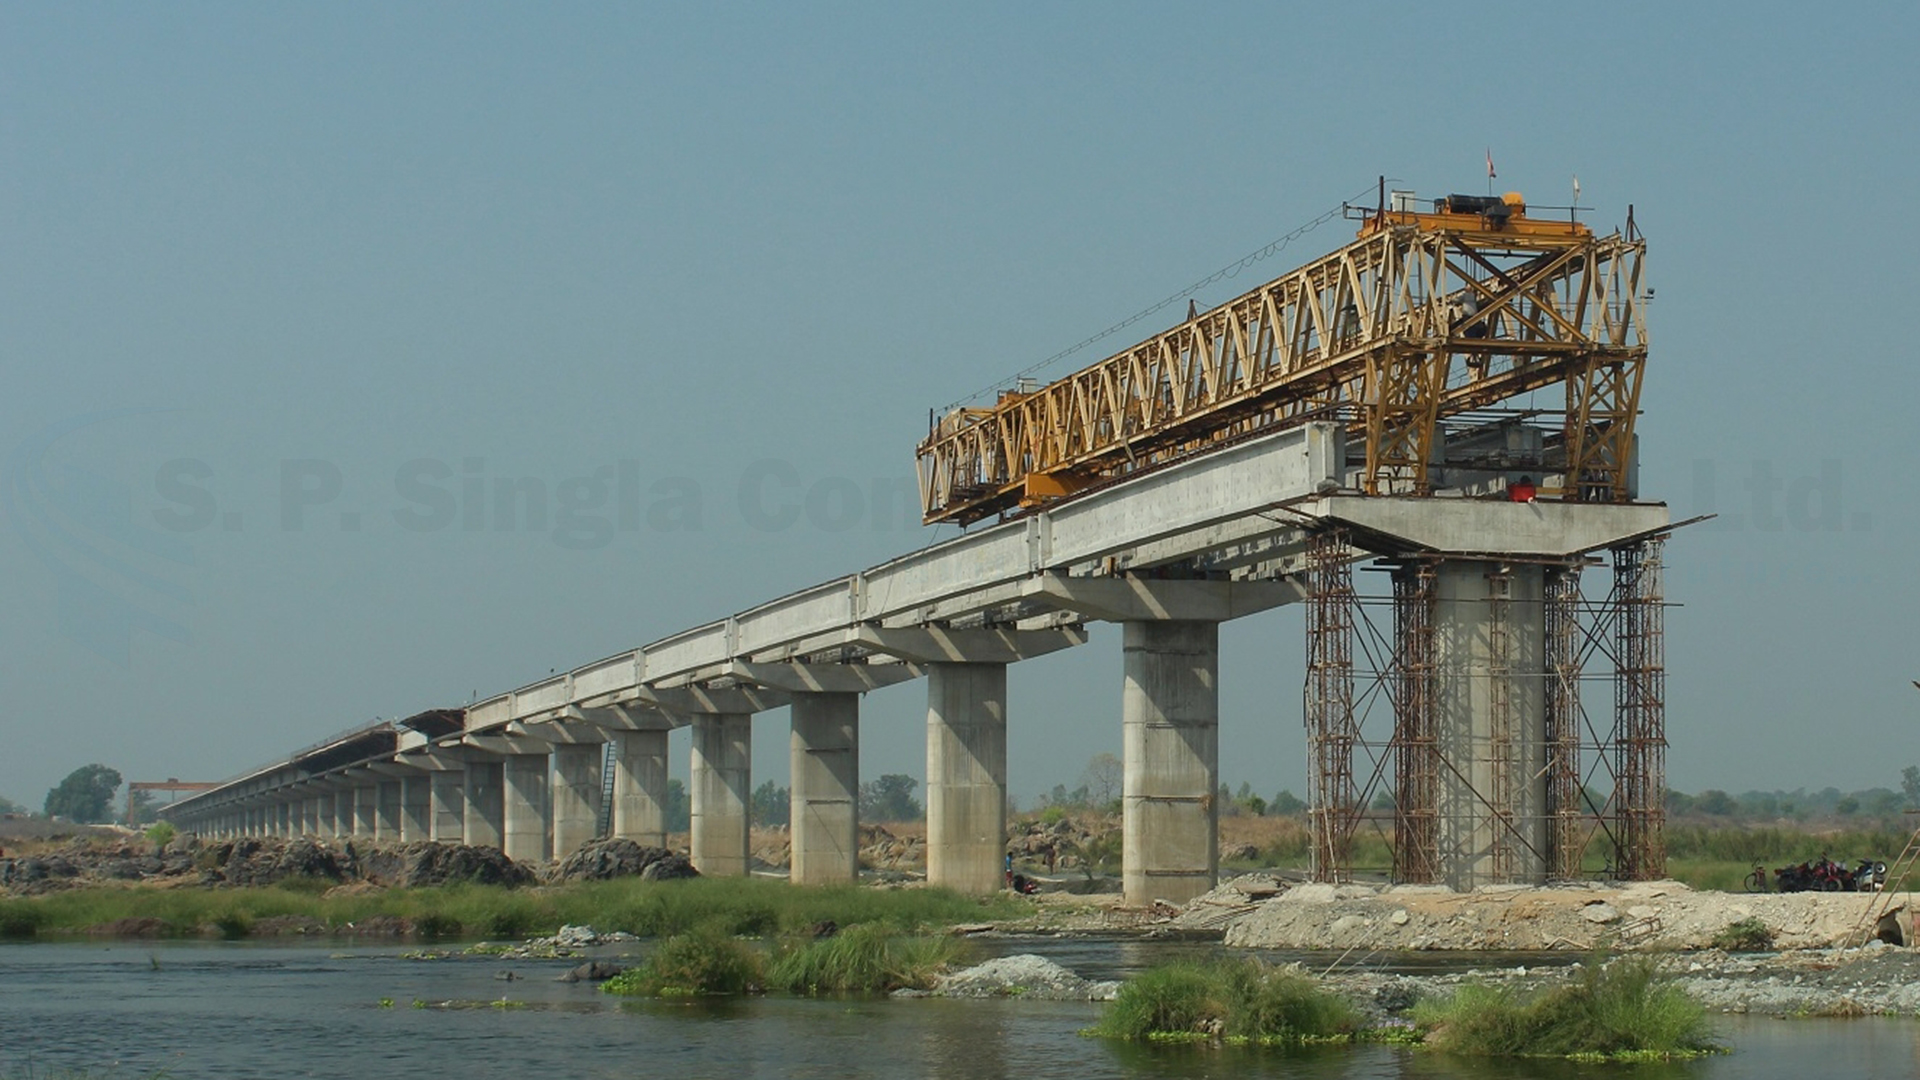 1.50 Km Long High Level Bridge over river Mahanadi at Nelson Mandela Chowk in Sambalpur district, Odisha